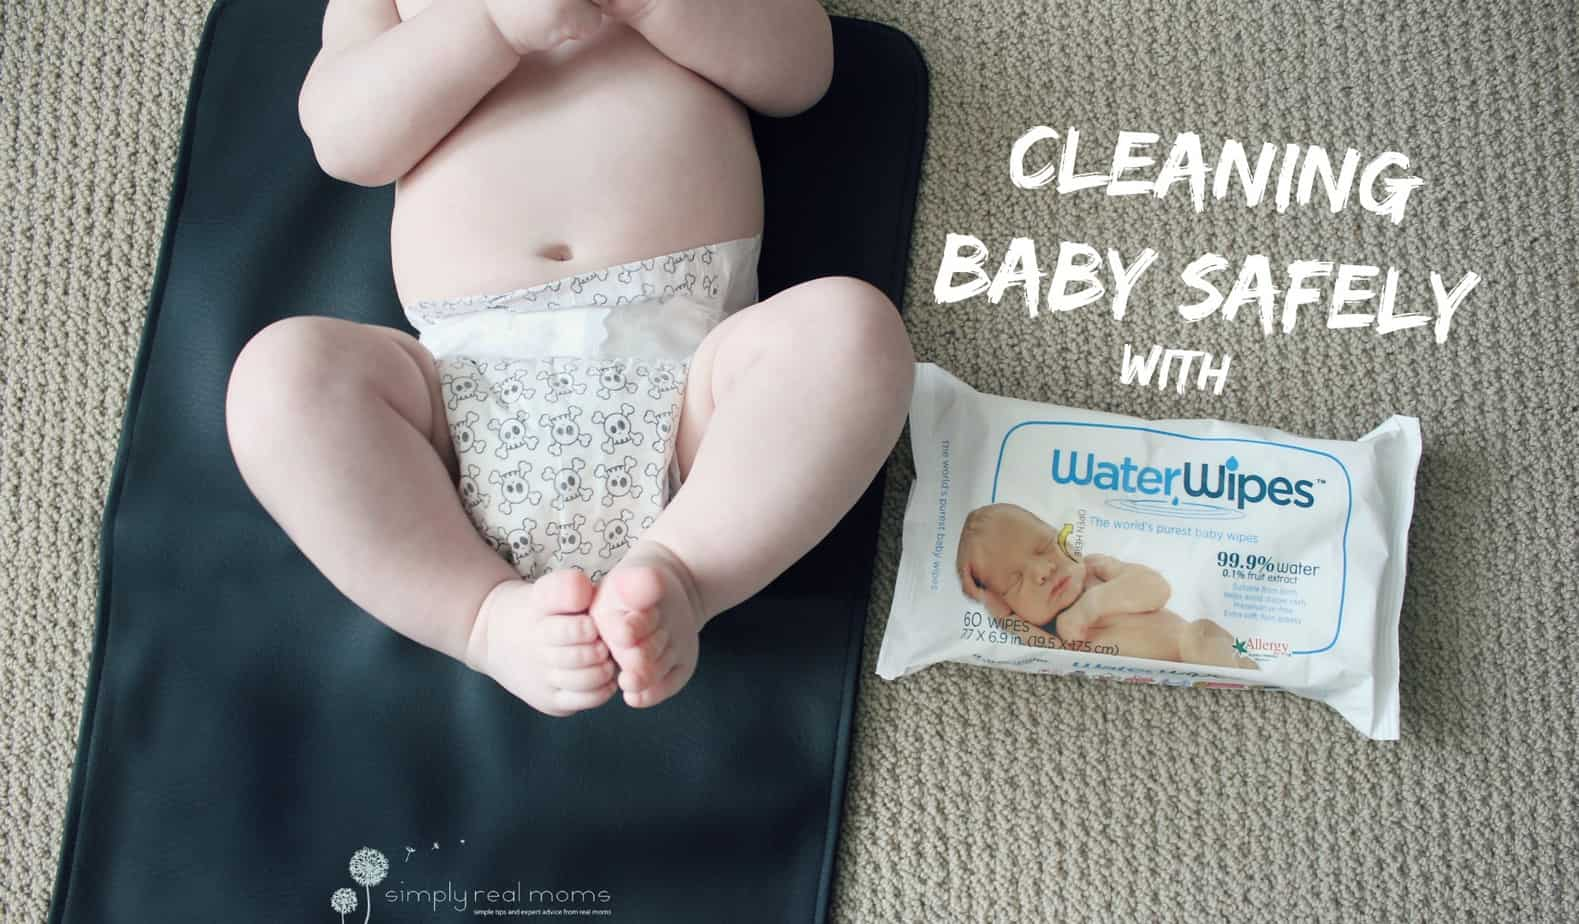 Cleaning Baby Safely With Water Wipes 4